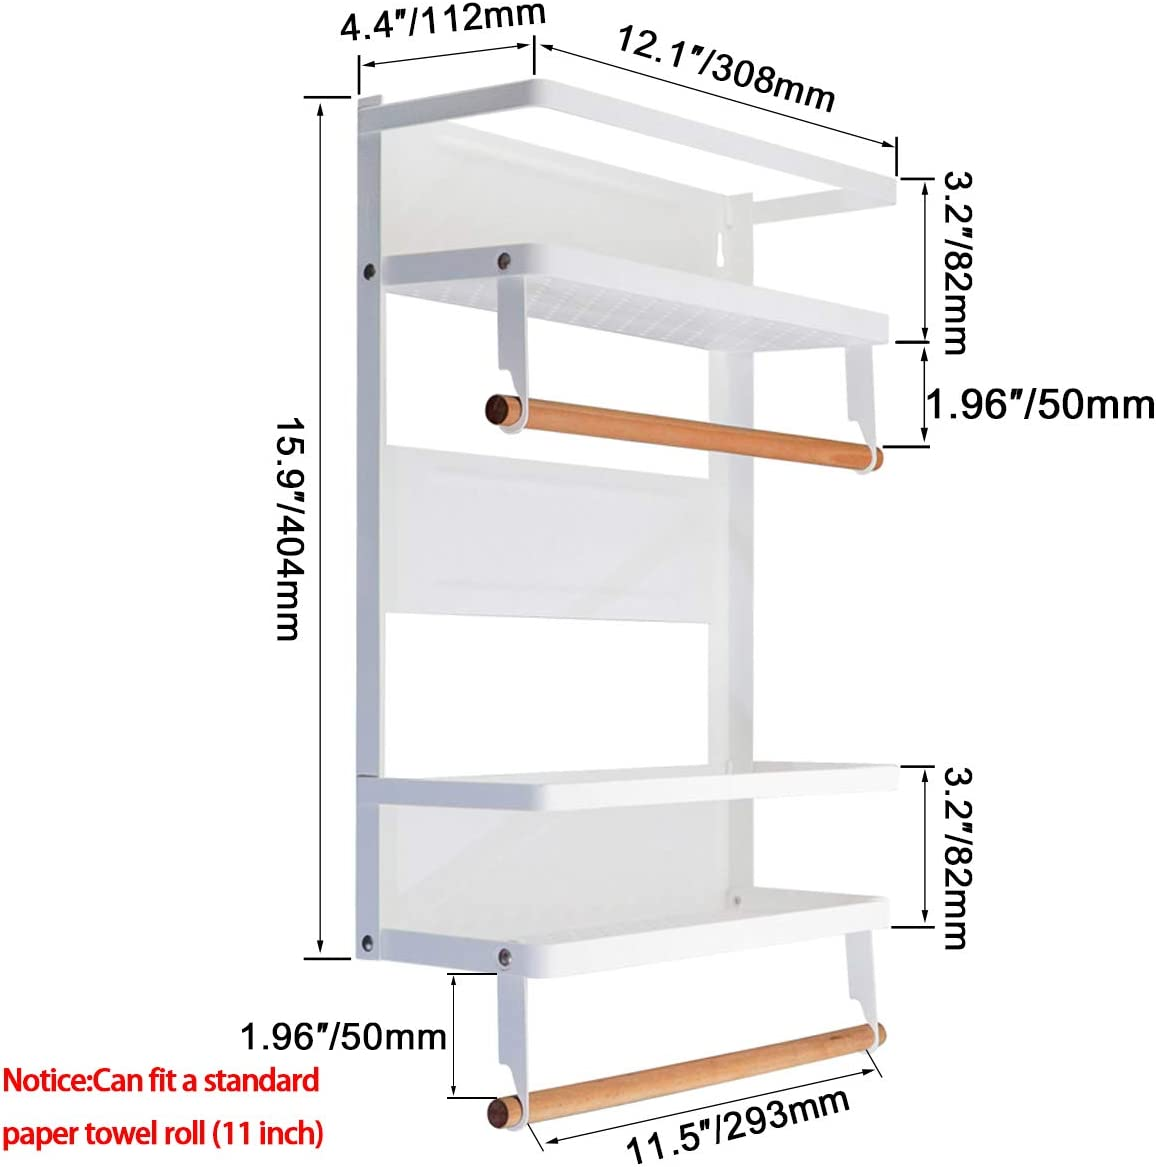 Magnetic Fridge Spice Rack Refrigerator Organizer Rack Double Tier Foldable Kitchen Magnetic Side Shelf for Storage Spices Olive Oil Sauce Salt Pepper Towel with Wooden Holder Hook and Screw White